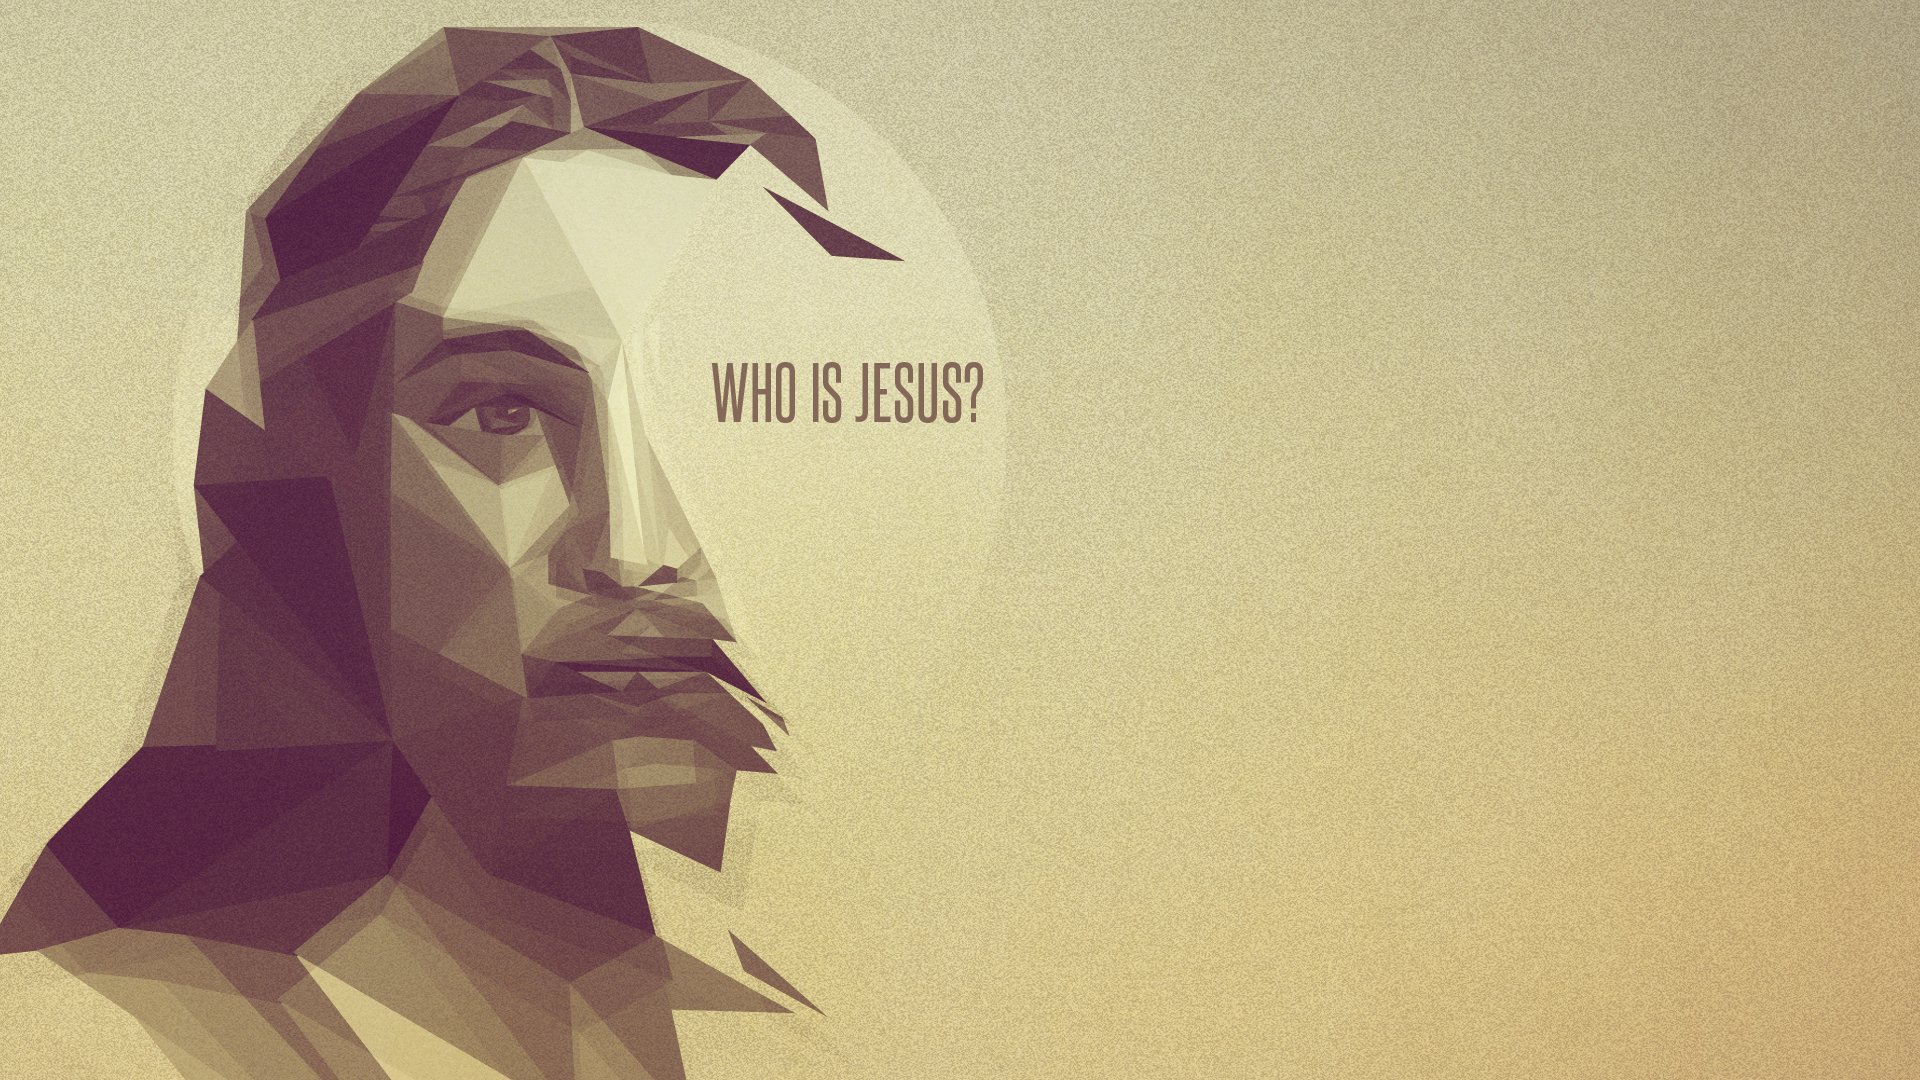 Who is Jesus? - In this talk, I unpack the lies of what the world says about Jesus, and what Satan tries to make us believe about Him. Conversely, I discuss what the gospels say about Jesus, and finally who JESUS says He is. His words are truth- He IS truth, and because of that, we can trust Him and the plan He has for our lives.